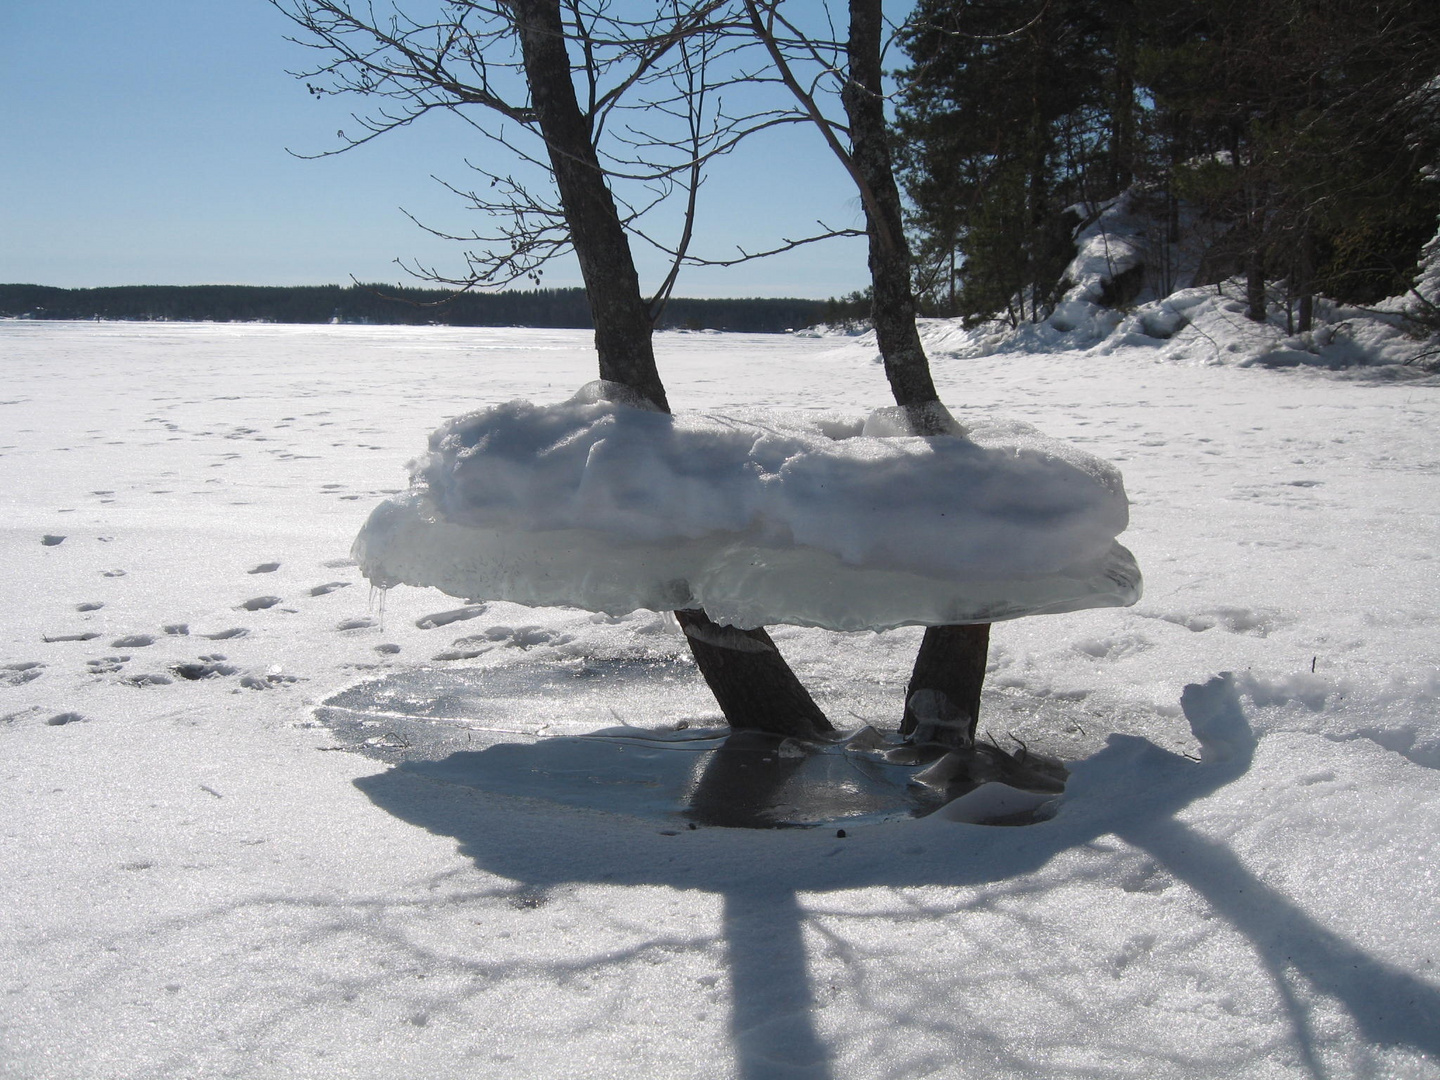 The ice covered tree